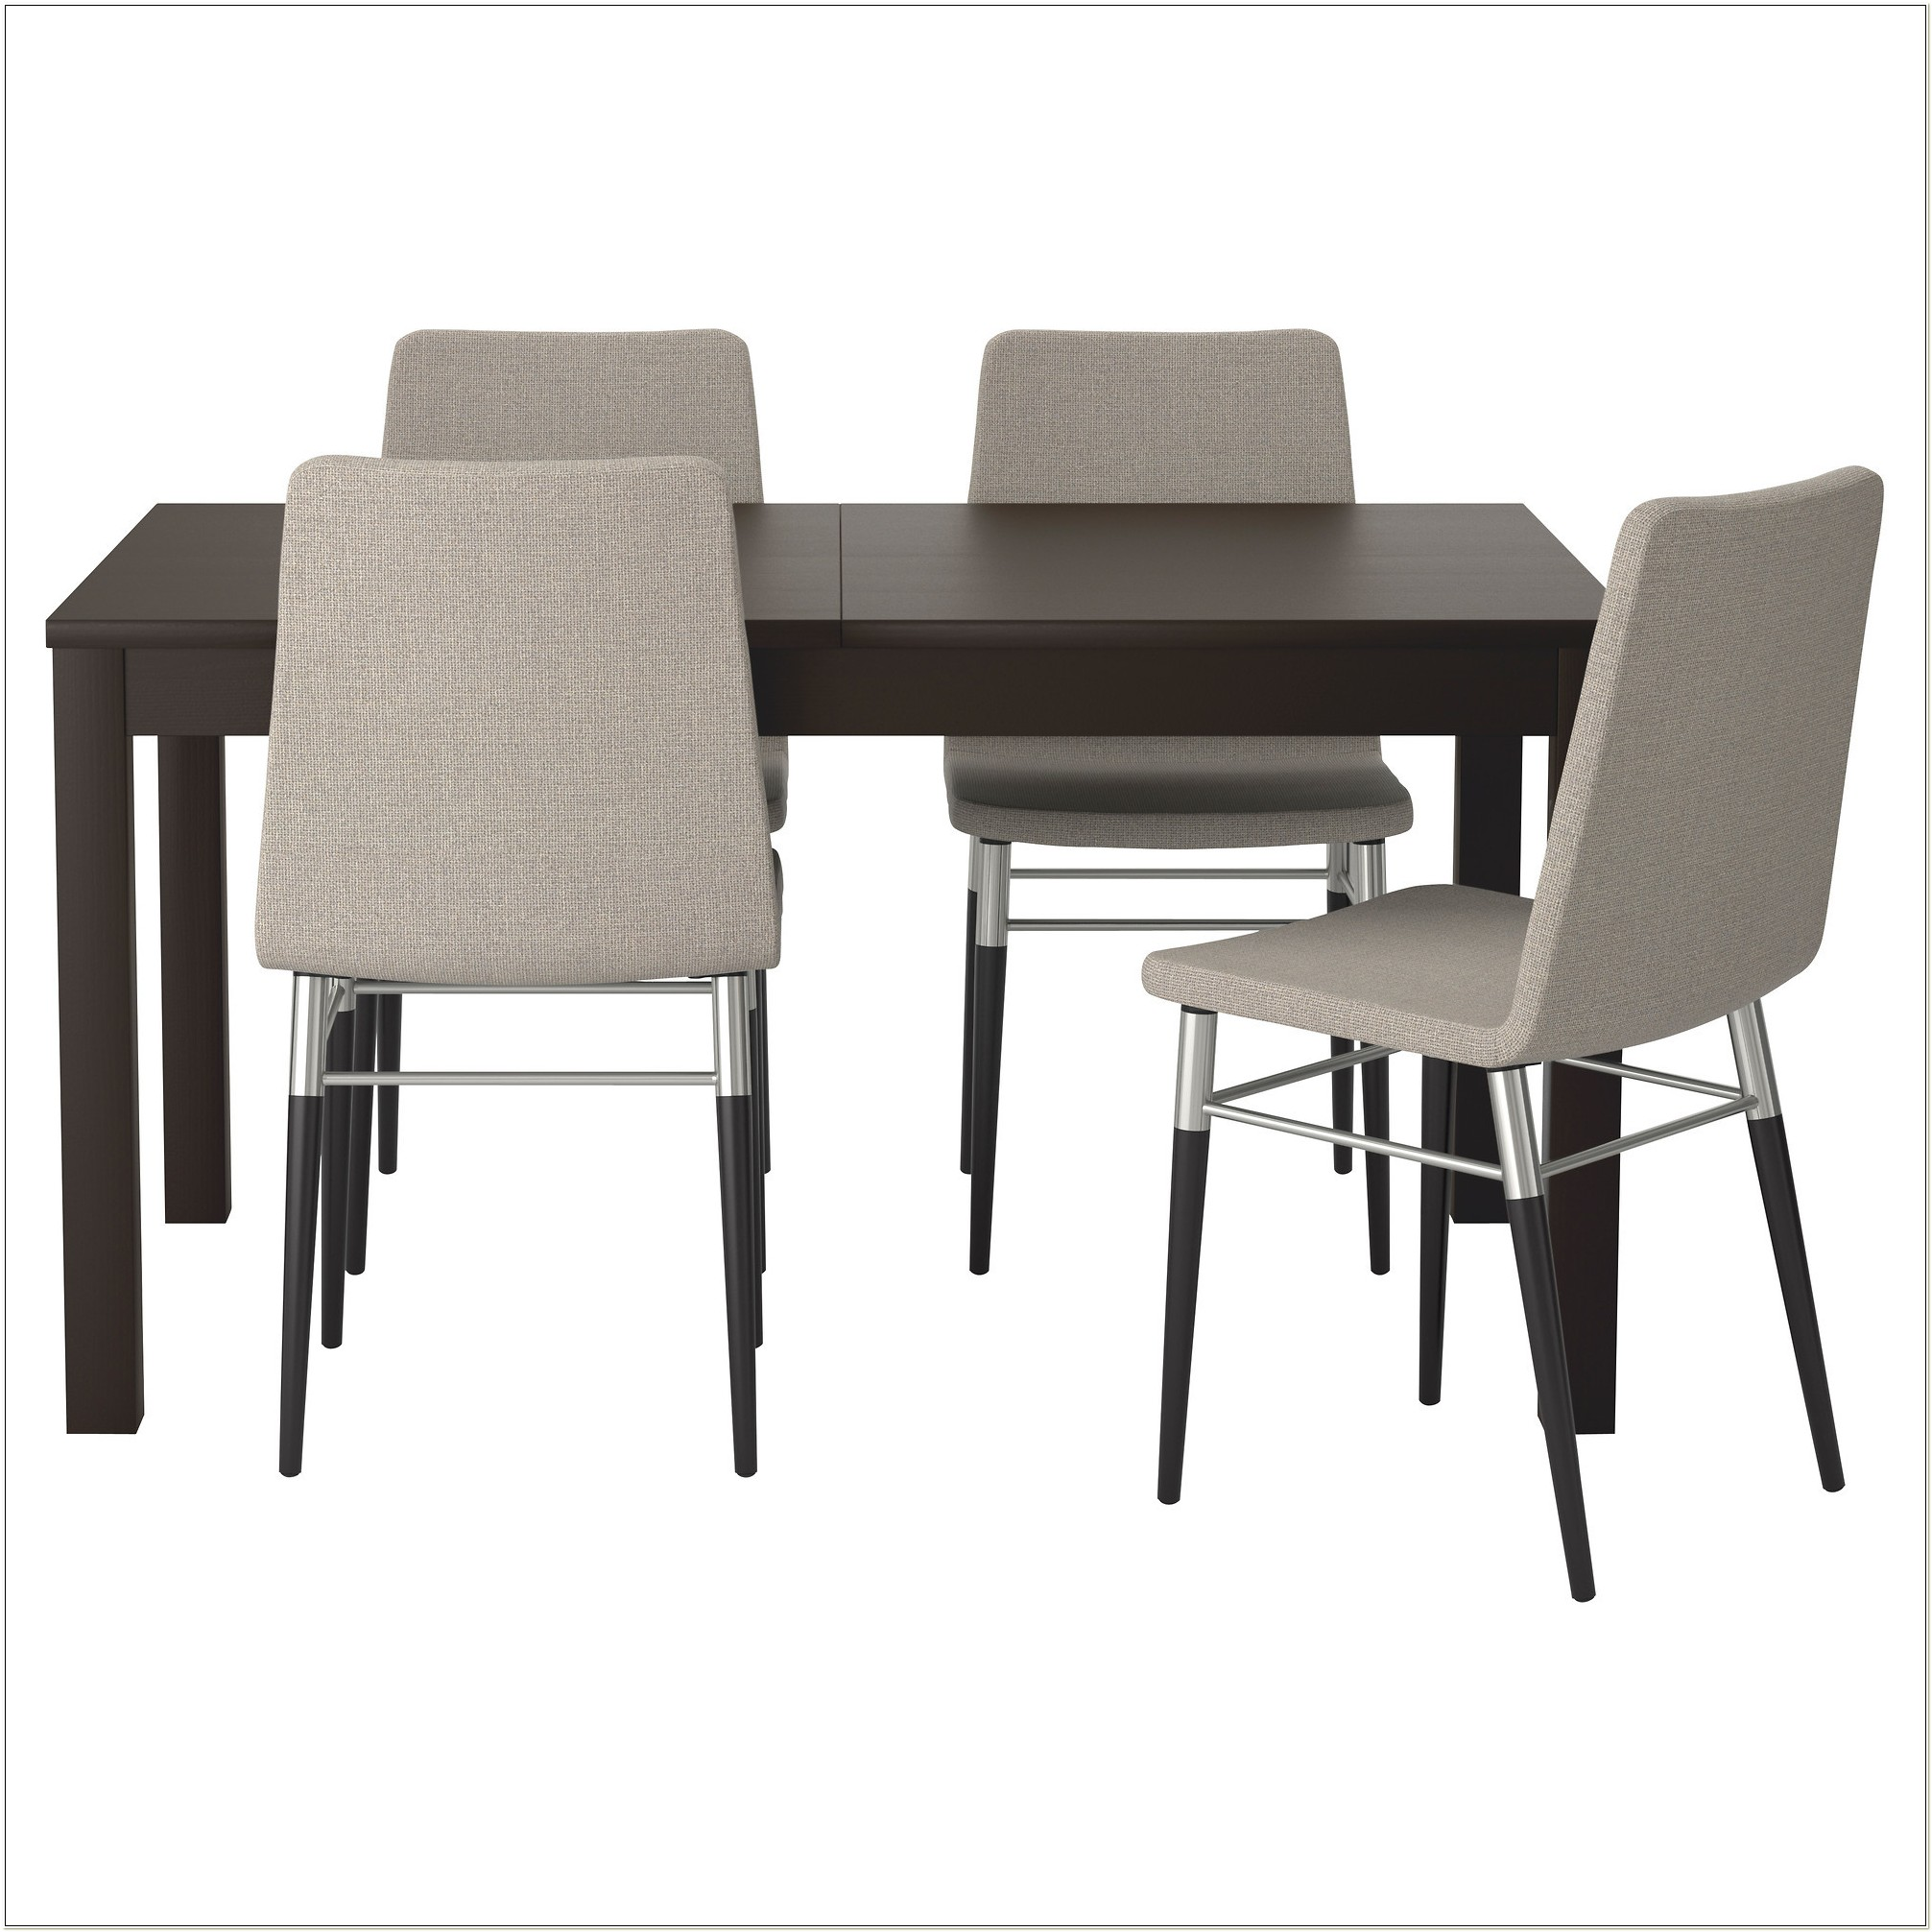 Ikea Dining Table 4 Chairs Set